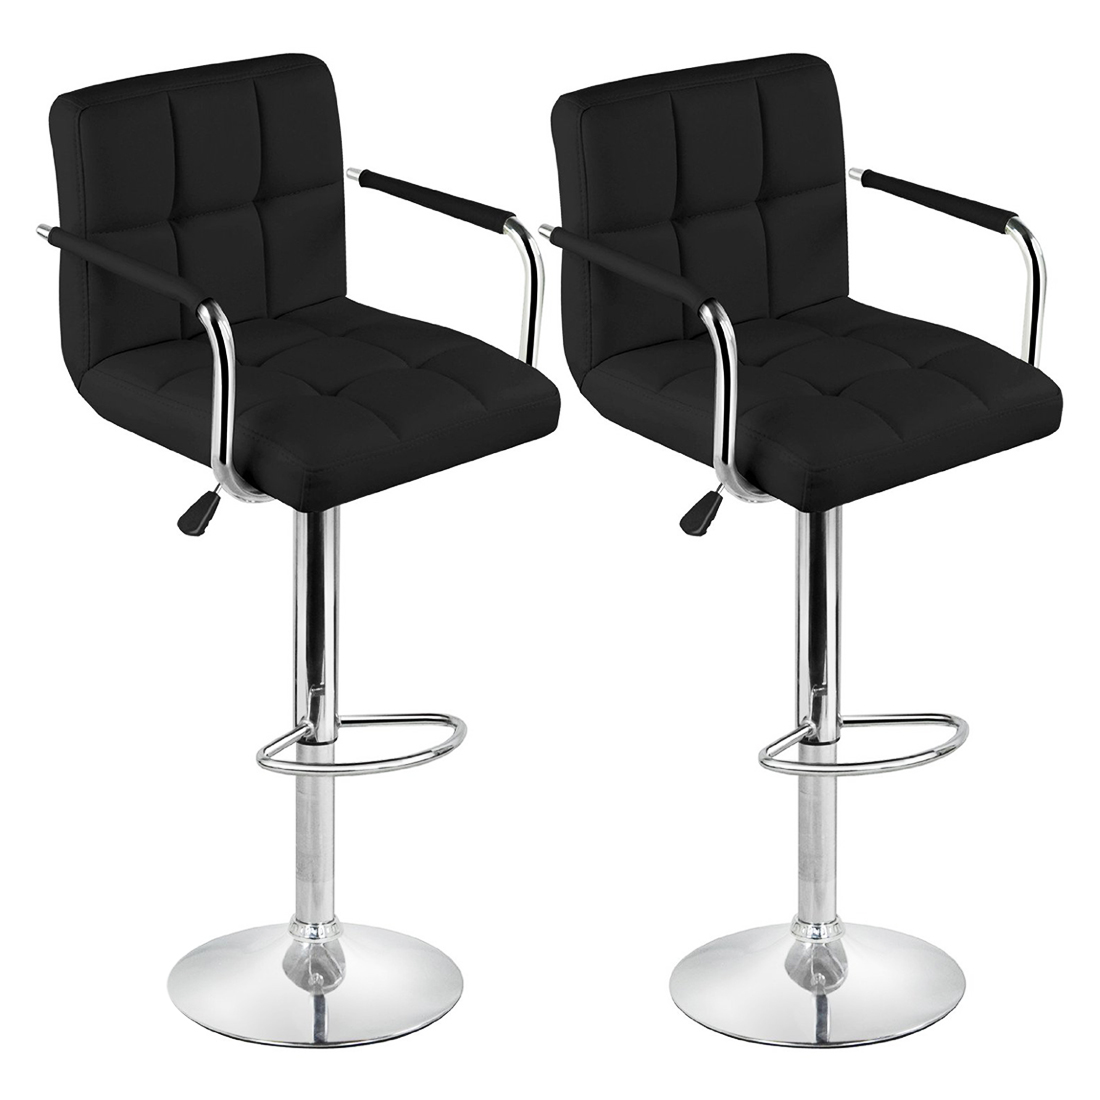 Black Bar Stool Chairs Chair Stand For Exercise Ball Aliexpress Buy 2 Faux Leather Kitchen Breakfast